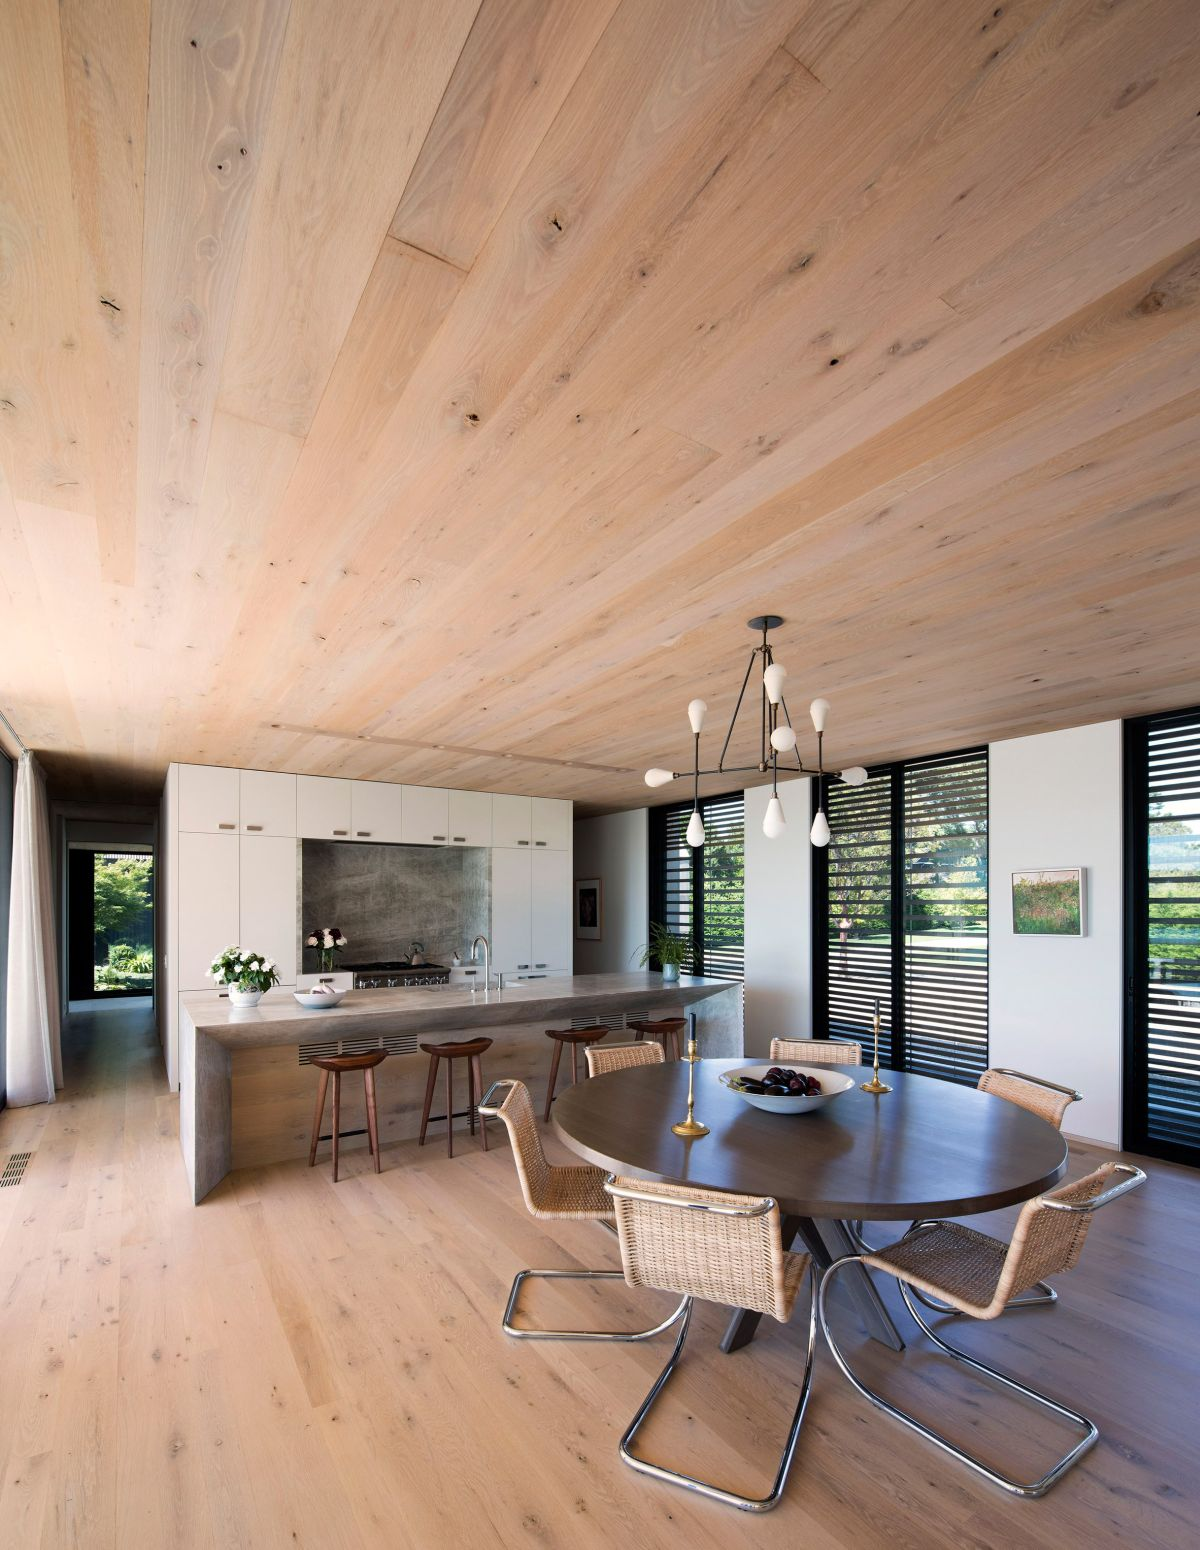 1561104968 803 swoon worthy homes in hamptons that work with the natural landscape - Swoon-Worthy Homes in Hamptons That Work With the Natural Landscape